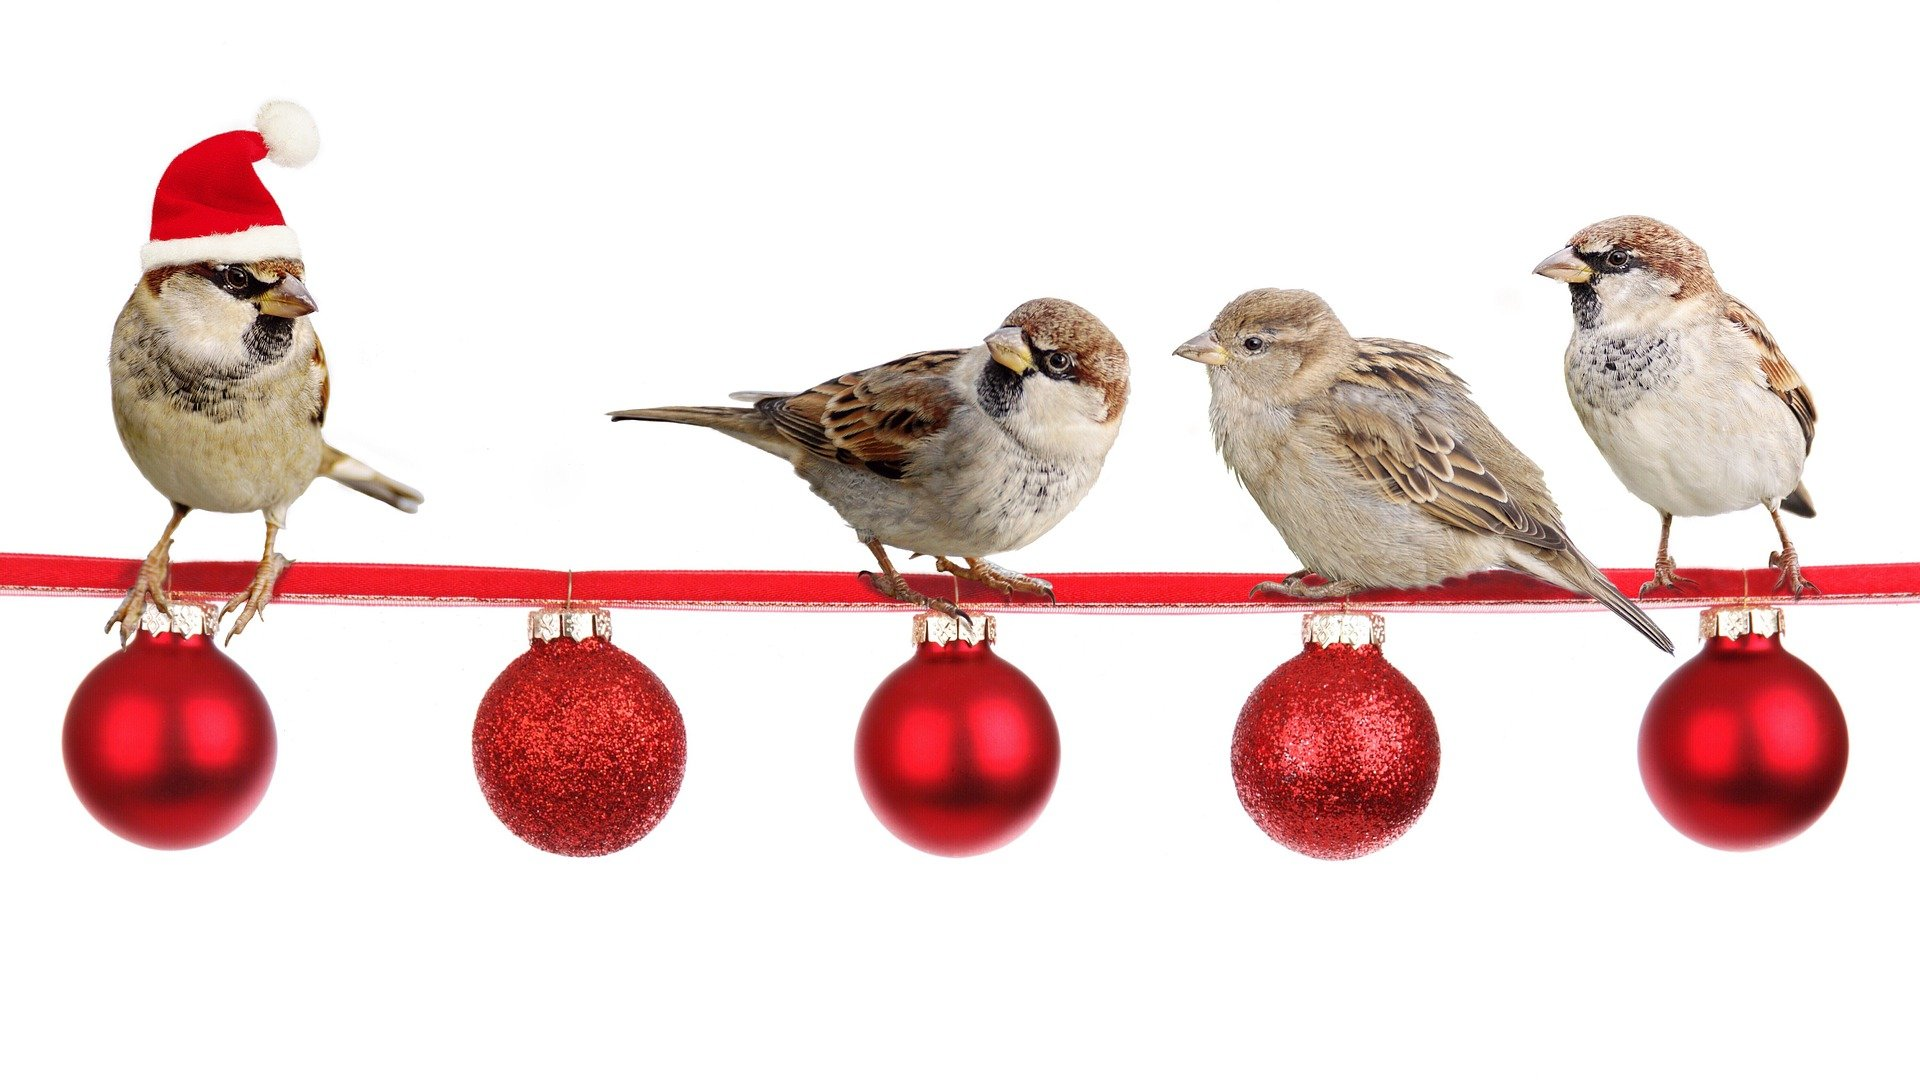 4 Sparrows Sitting on a red rope with baubles